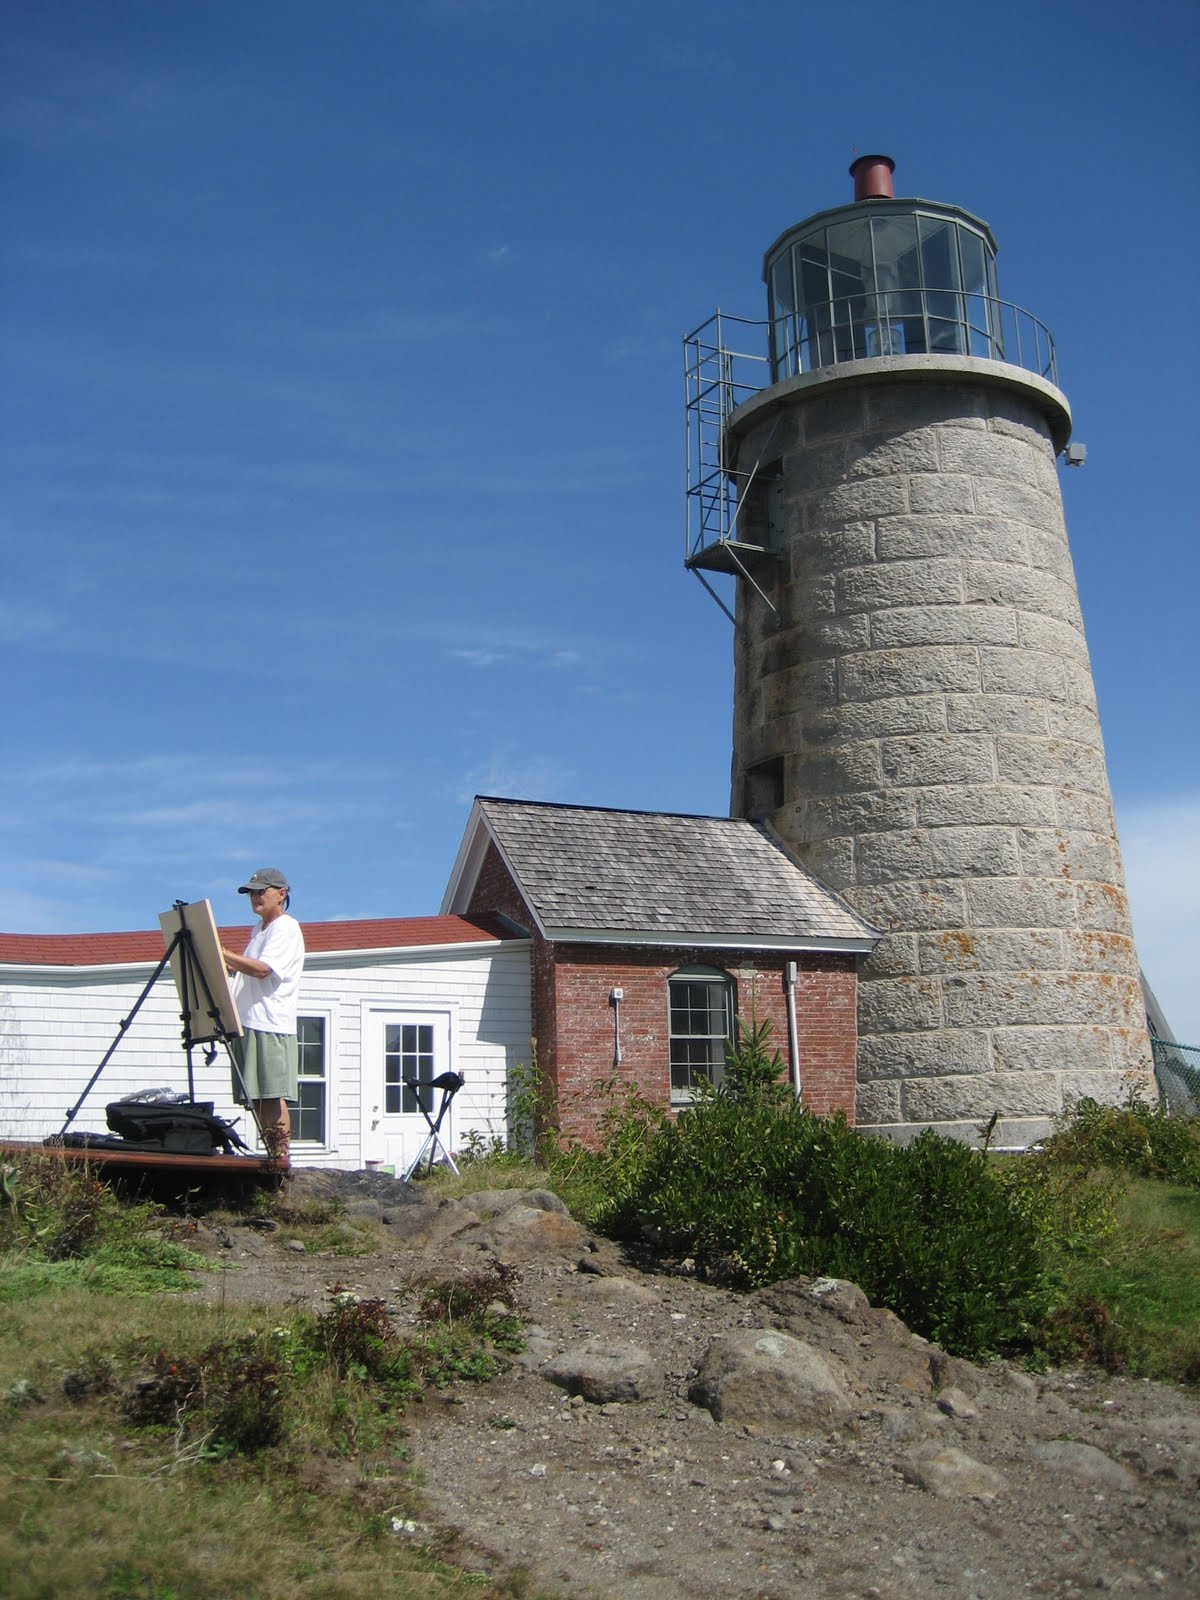 monhegan chat Browse and compare kia vehicles for sale near monhegan, me 04852 from local dealers and private sellers.